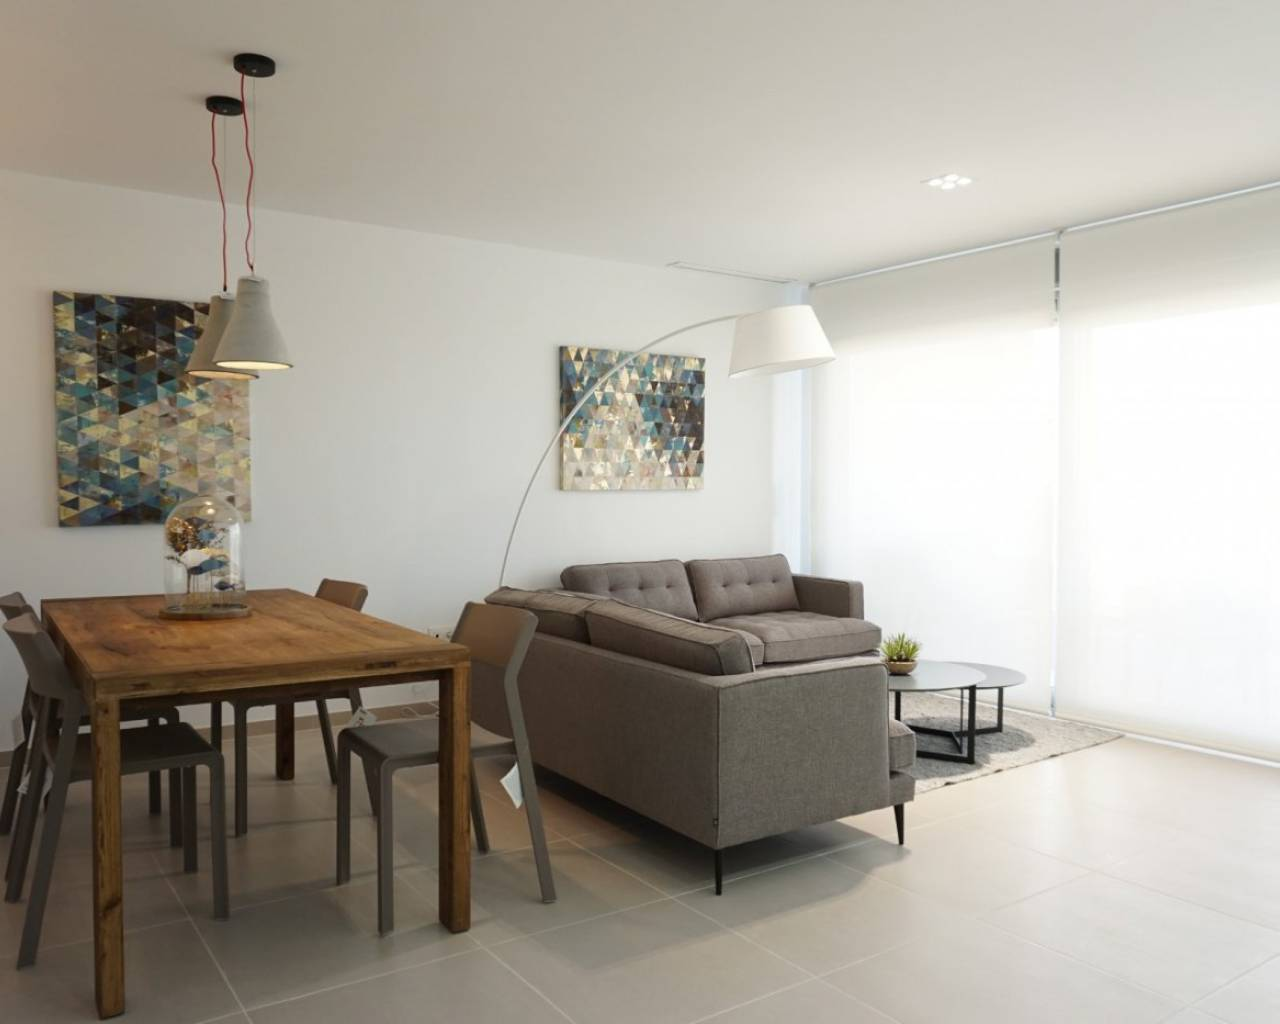 New Build - Apartment - Arenales del sol - Calle albacete